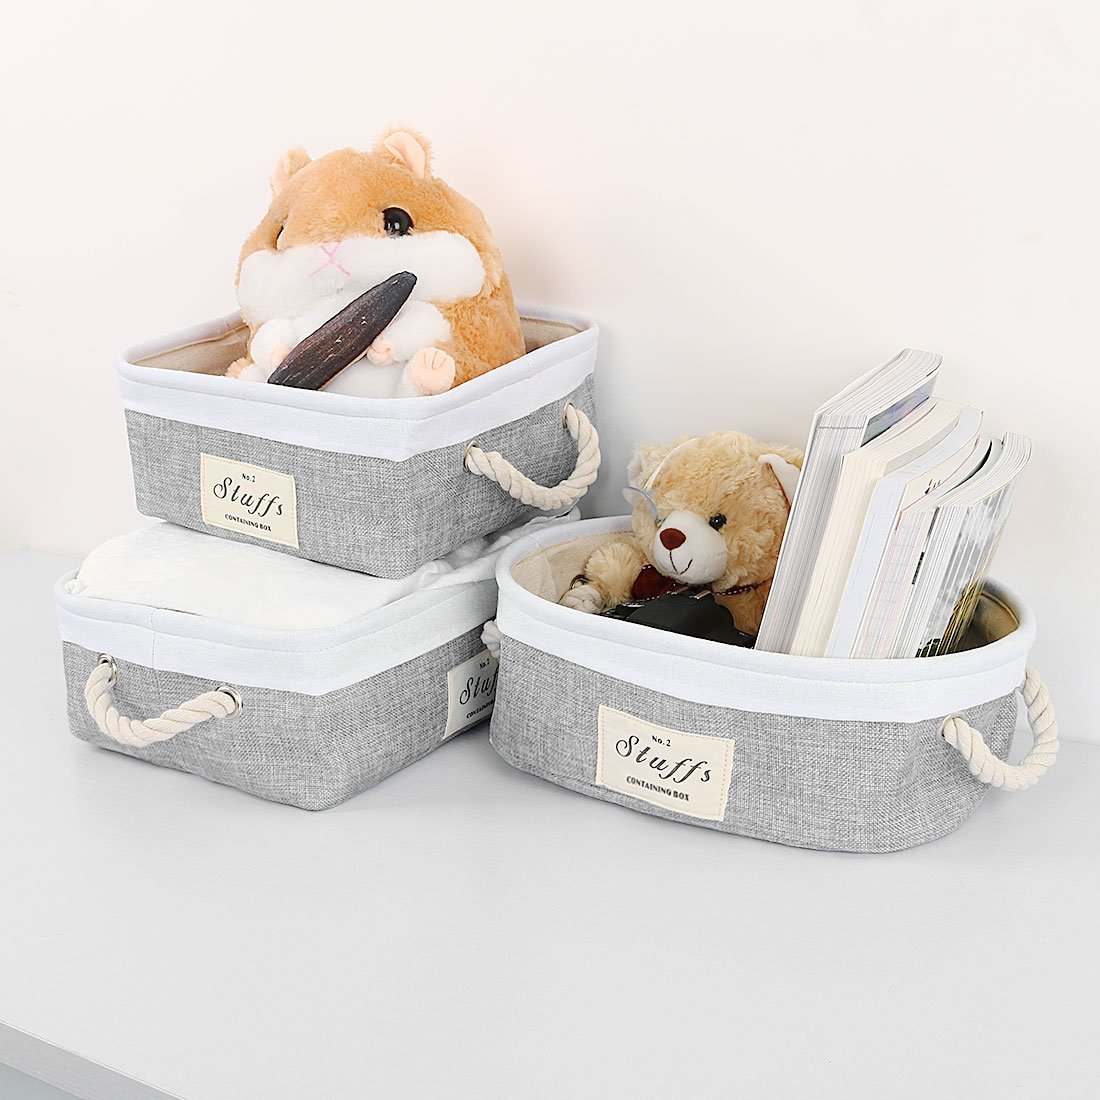 uxcell Folding Canvas Fabric Storage Basket Bin Container Organizer Cube Laundry Hamper w/Cotton Rope Handles for Clothes, Laundry, Toys, Books & More (Rectangle,Gray) by uxcell (Image #7)